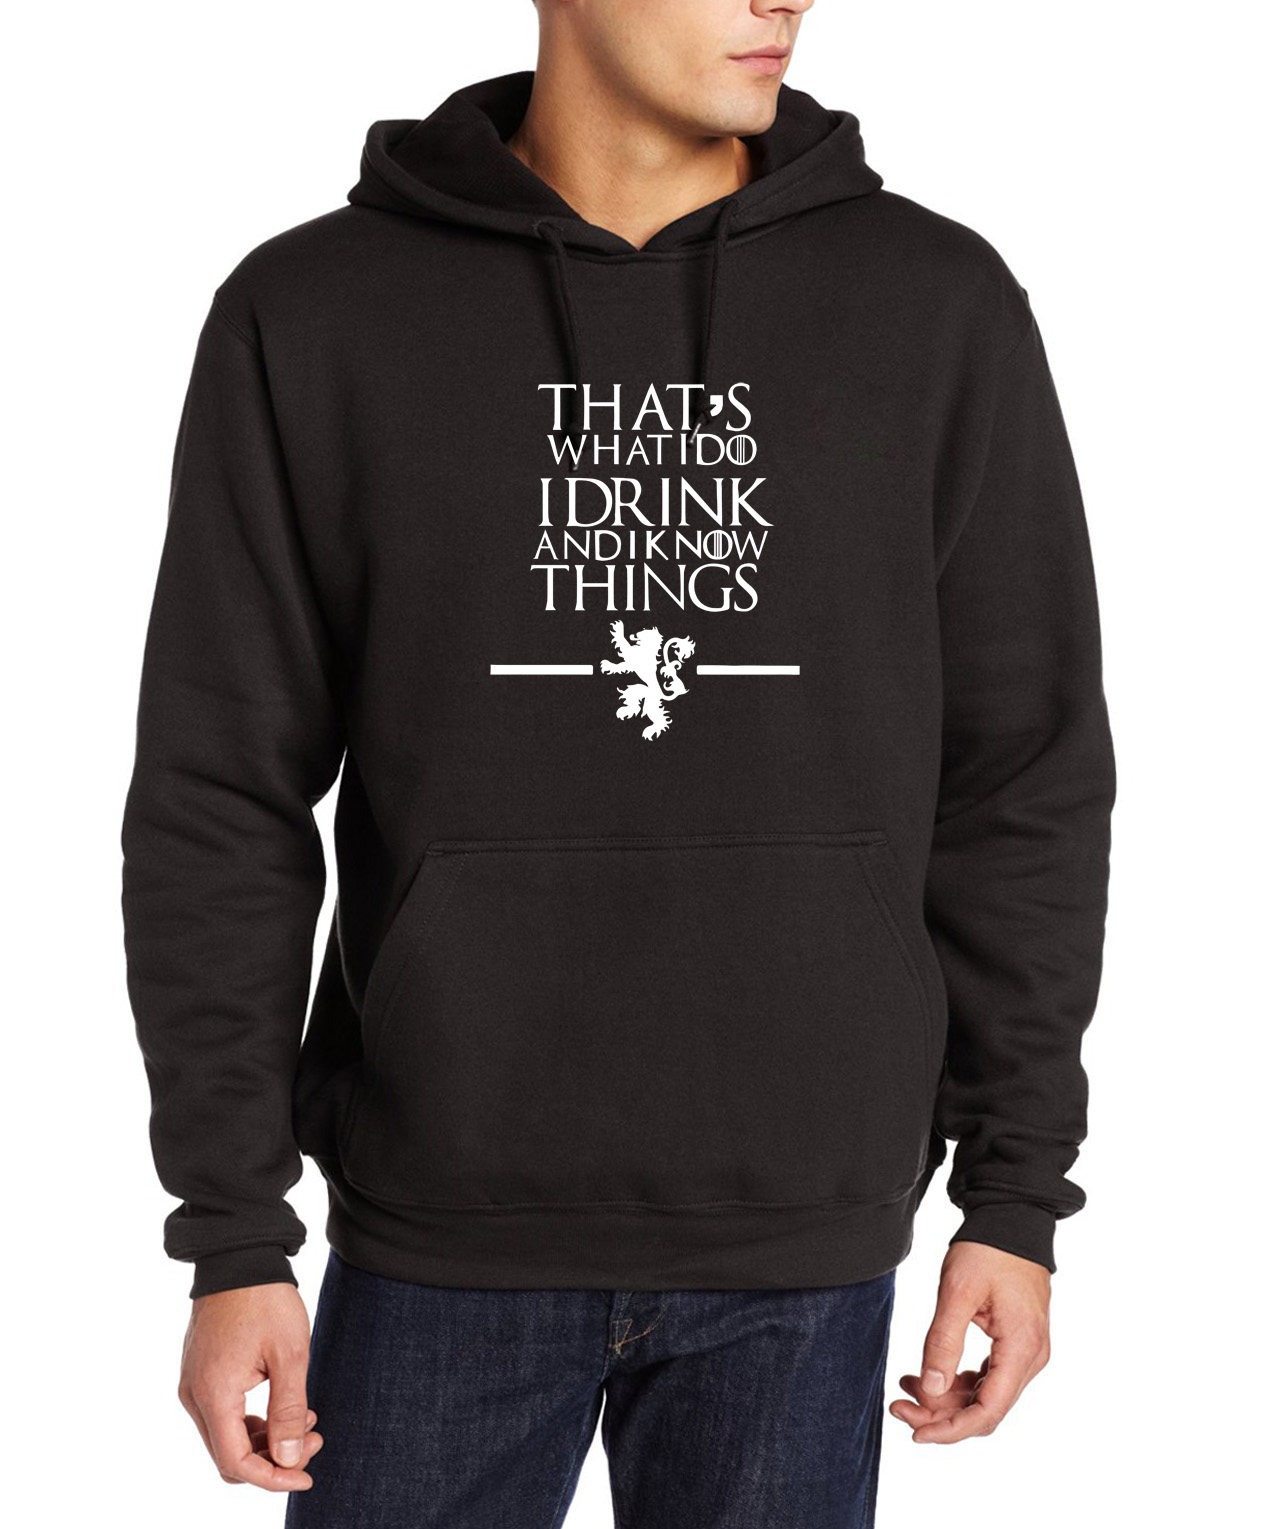 2016 Men Game of Thrones sweatshirt That's What I Do I Drink and I know Things print brand suits hip-hop harajuku pp gym hoodies(China (Mainland))